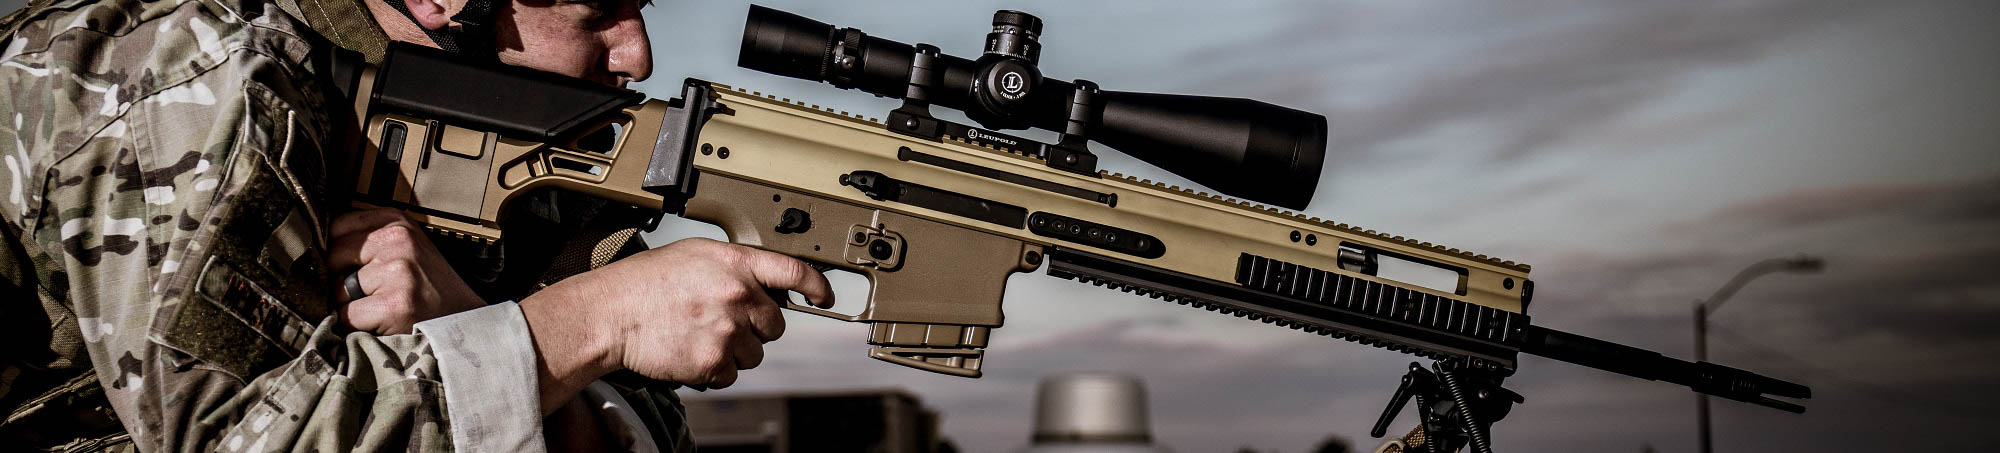 Welcome to Charlie's.  Your source for military grade rifles like the Mk20